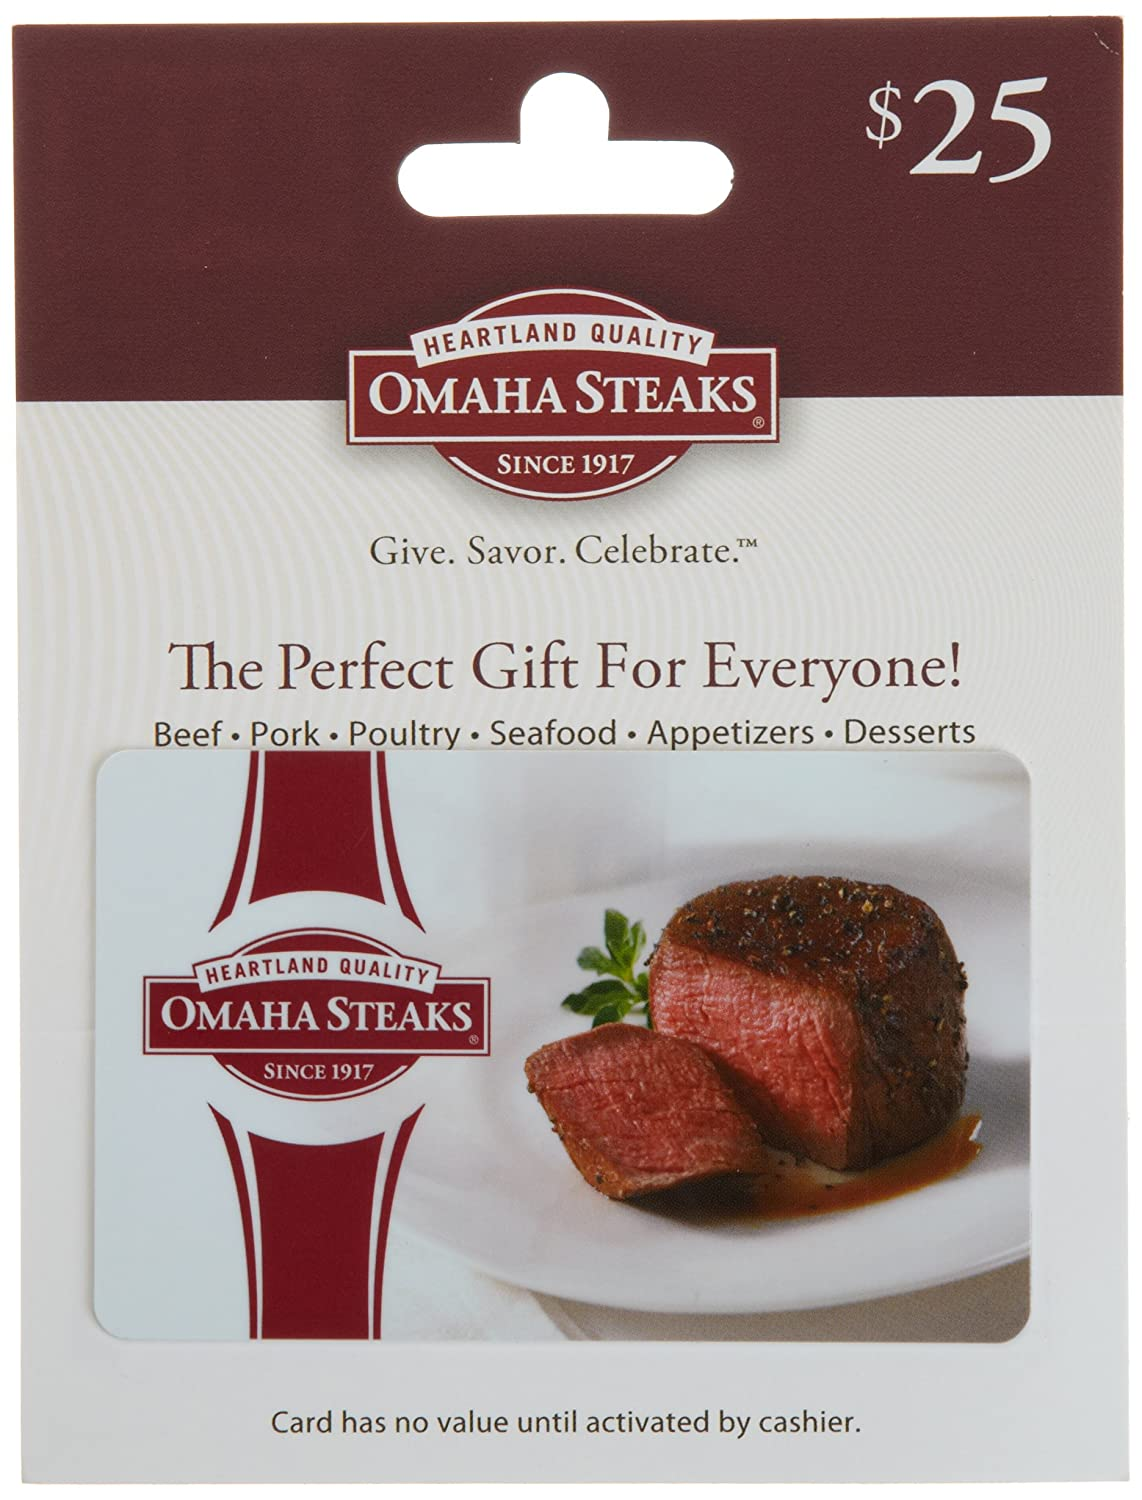 Omaha Steaks Gift Card Omaha Steaks Gift Card $25